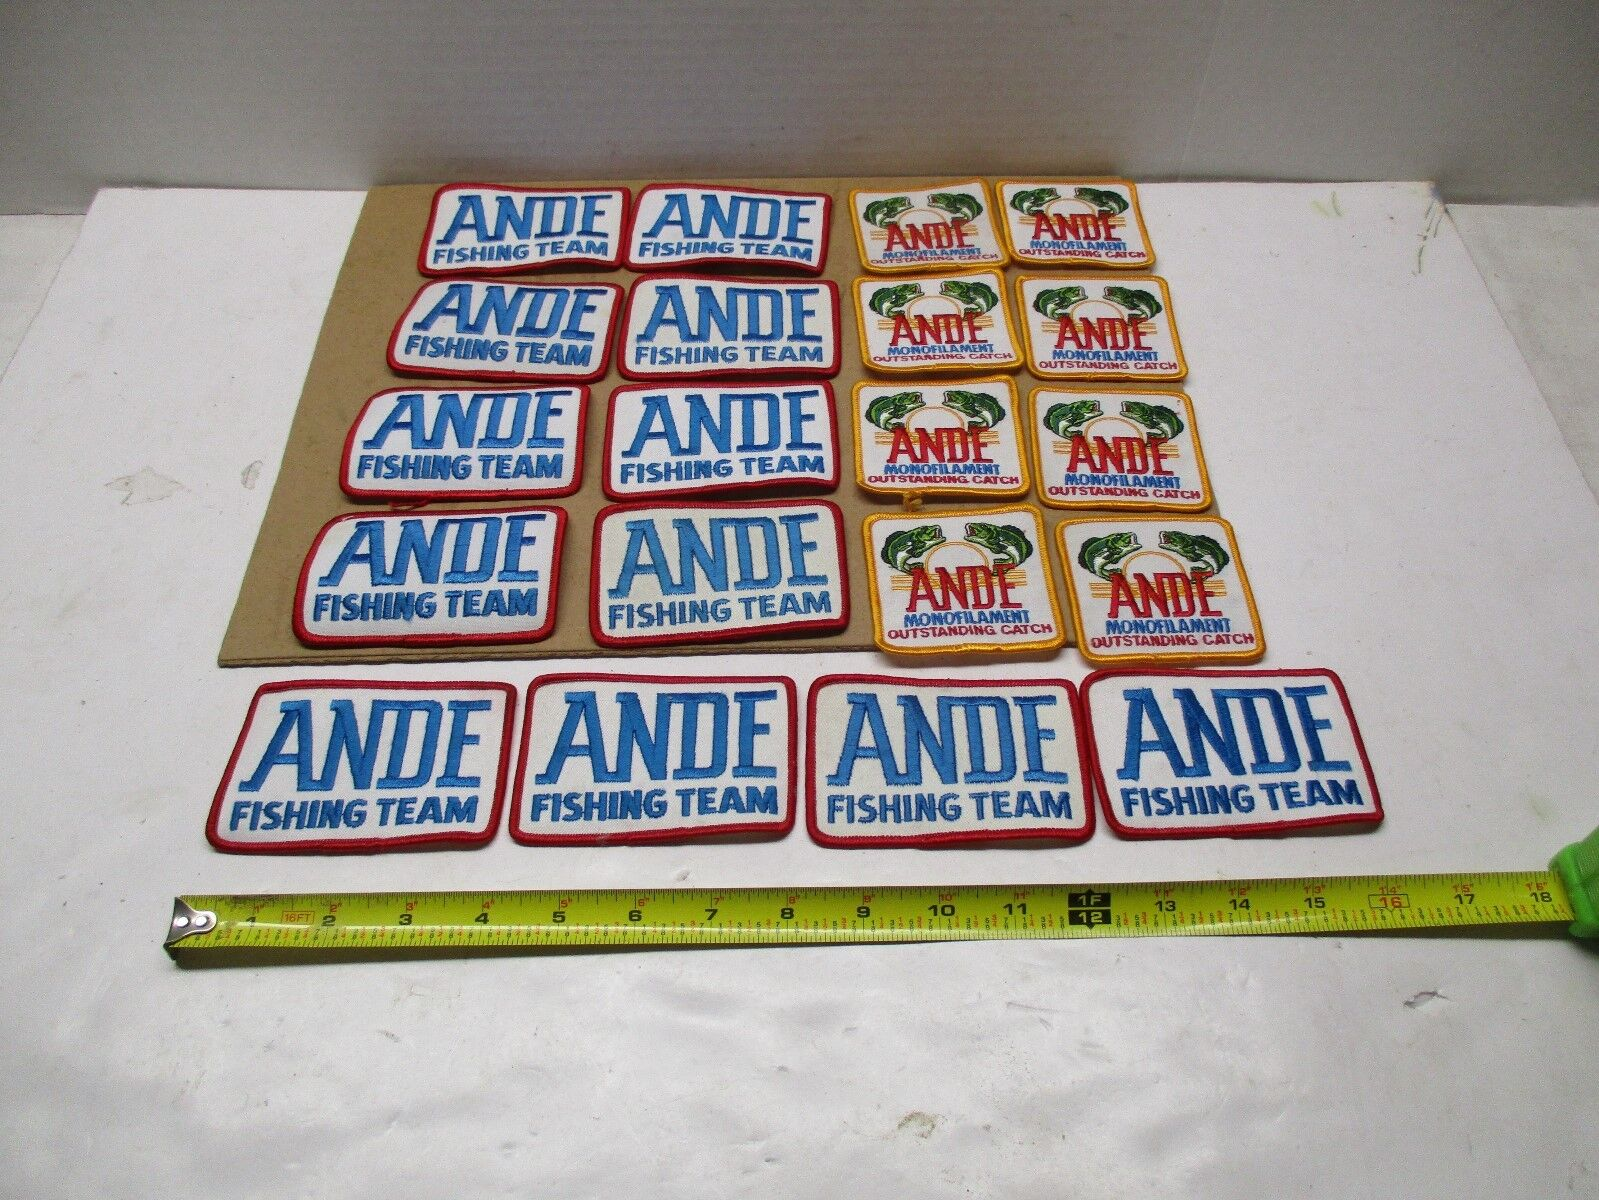 ANDE FISHING TEAM EMBROIDERED SEW ON PATCH TOTAL OF 20 PATCHS MUST SEE